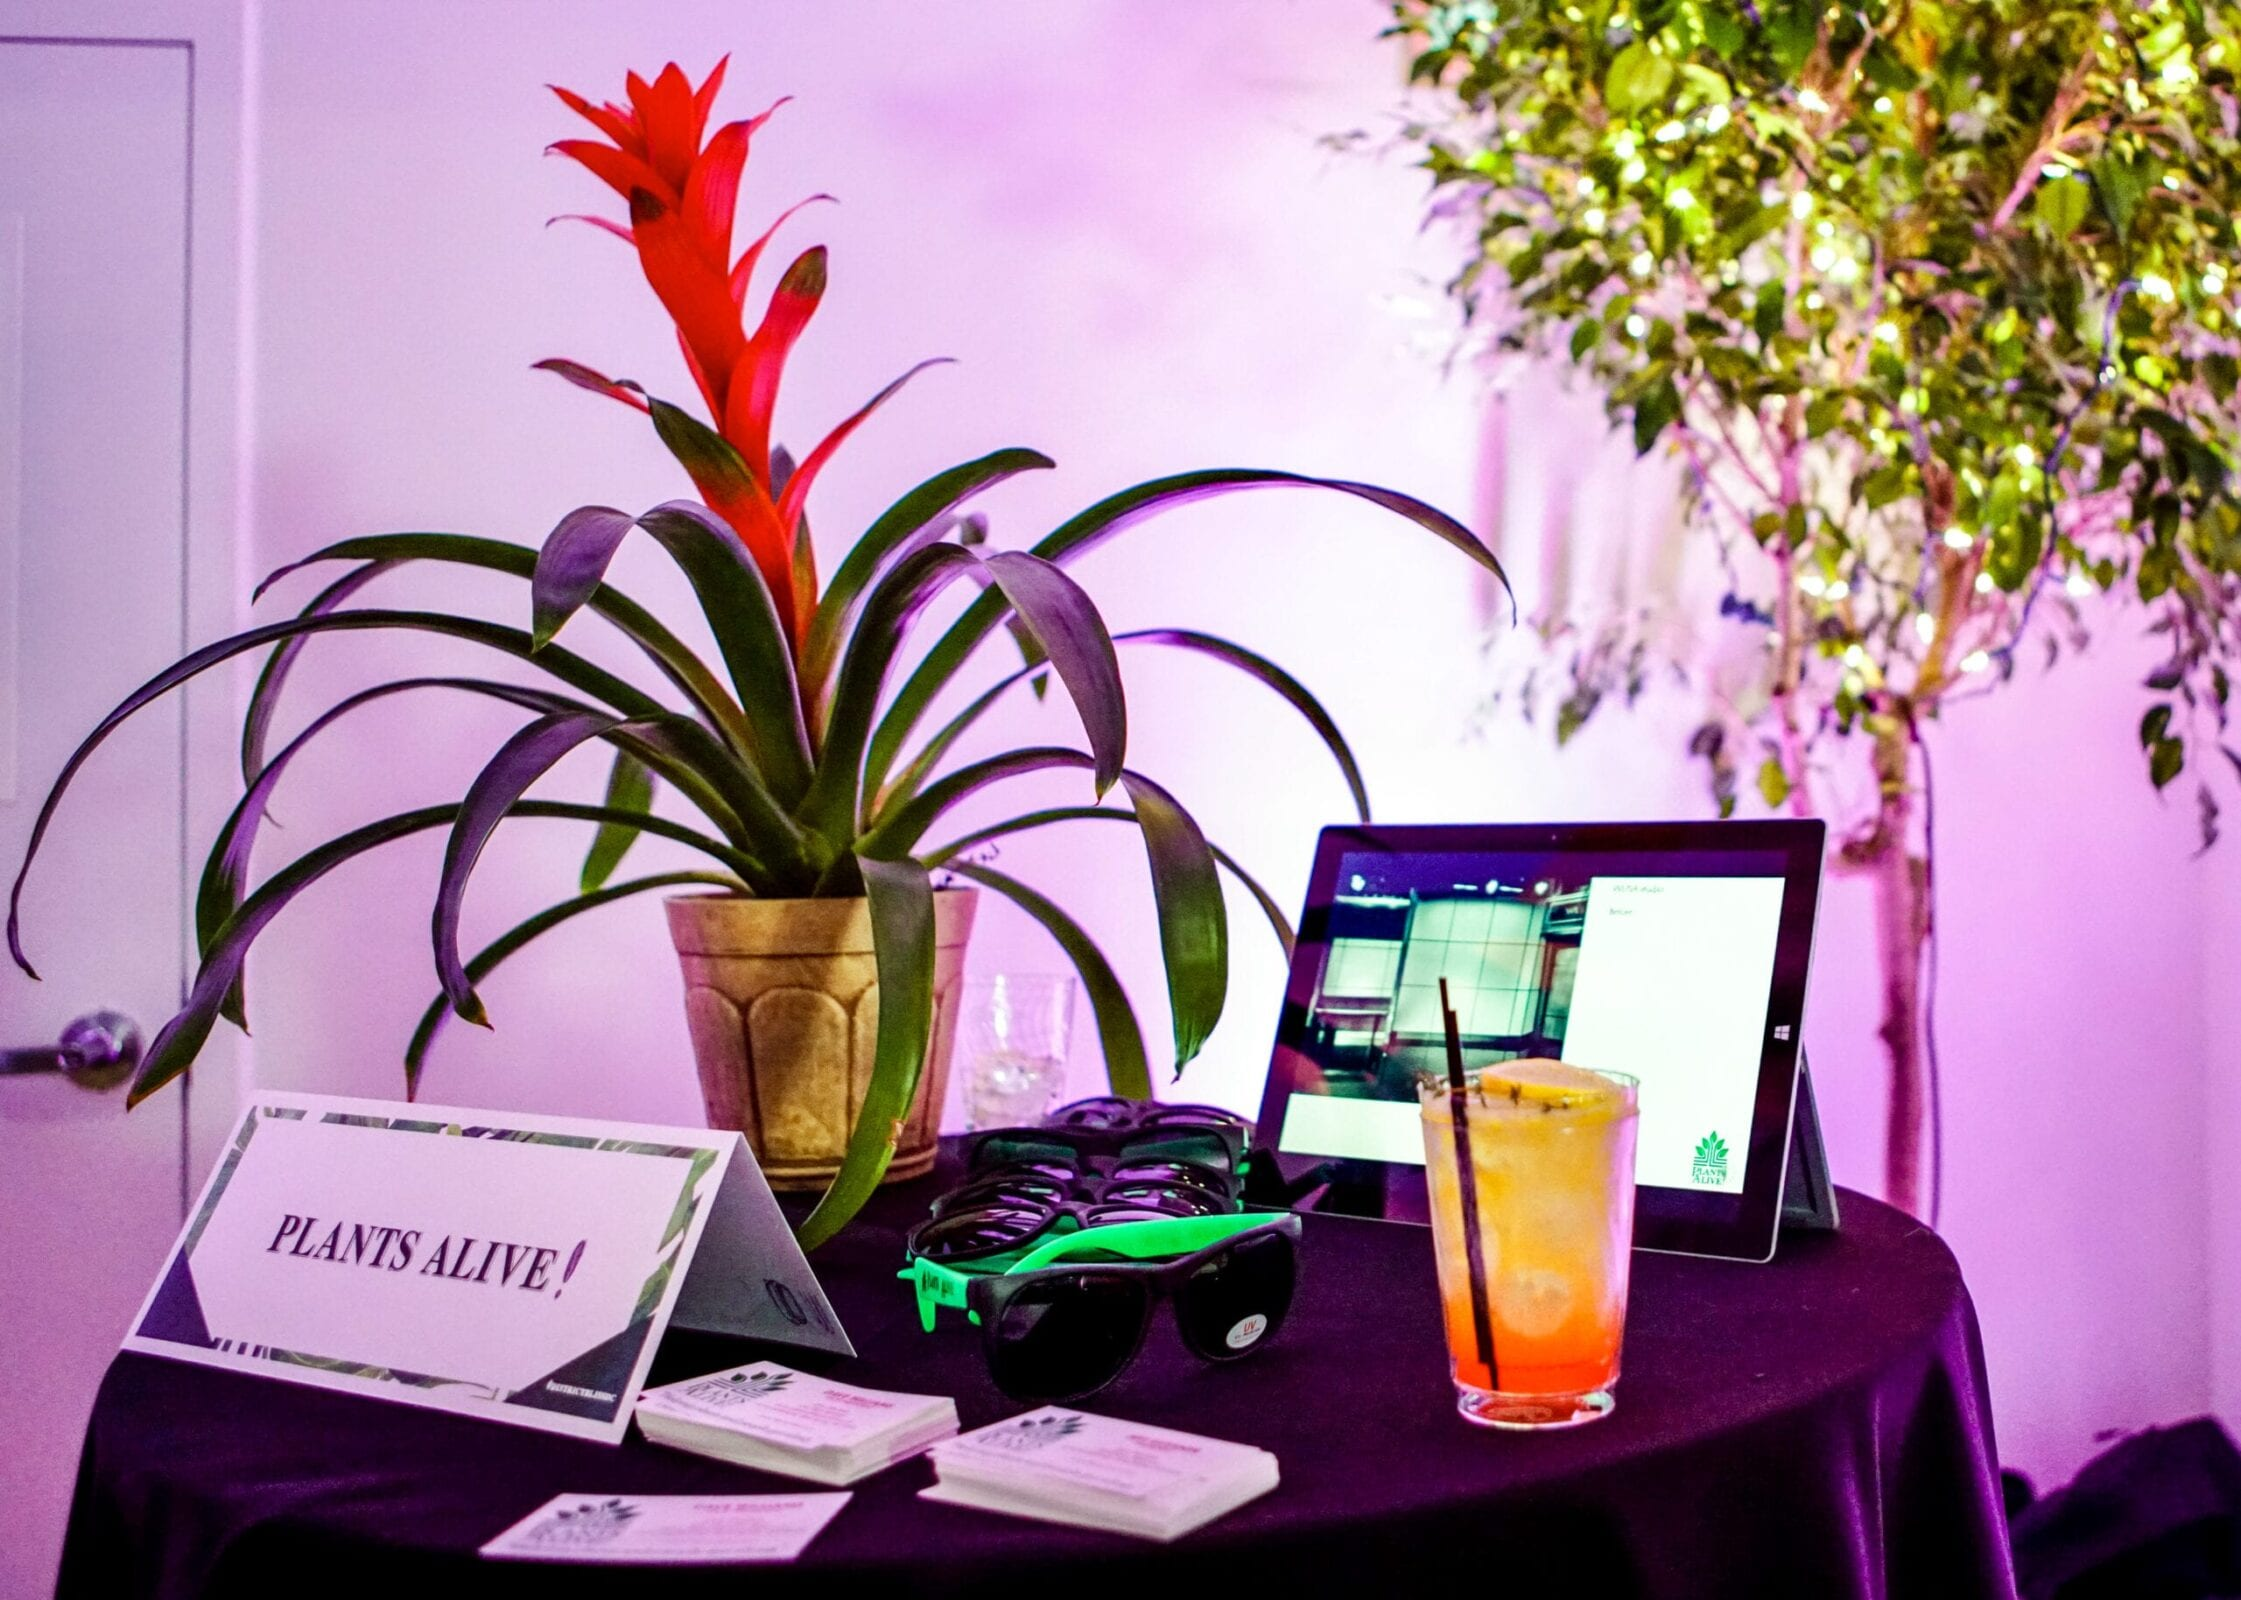 Plants Alive! brought gorgeous plant rentals in for the District Bliss Vendor Social, a light-hearted, welcoming, casual networking event